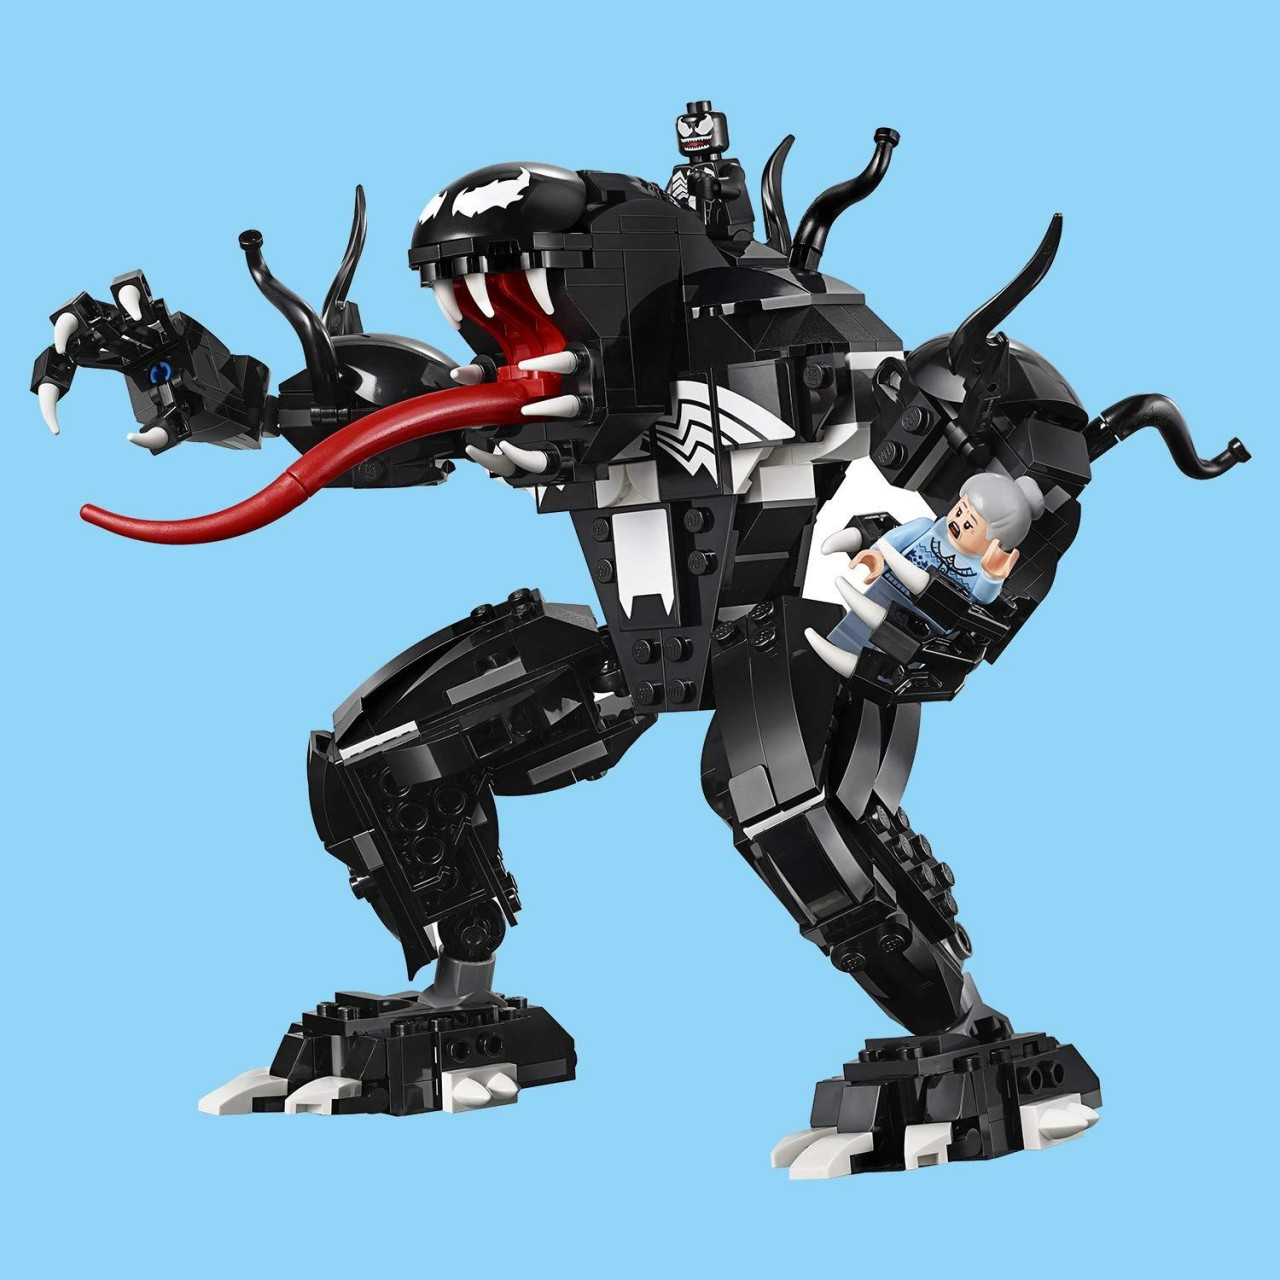 LEGO MARVEL SUPER HEROES 76115 Spider Mech vs. Venom